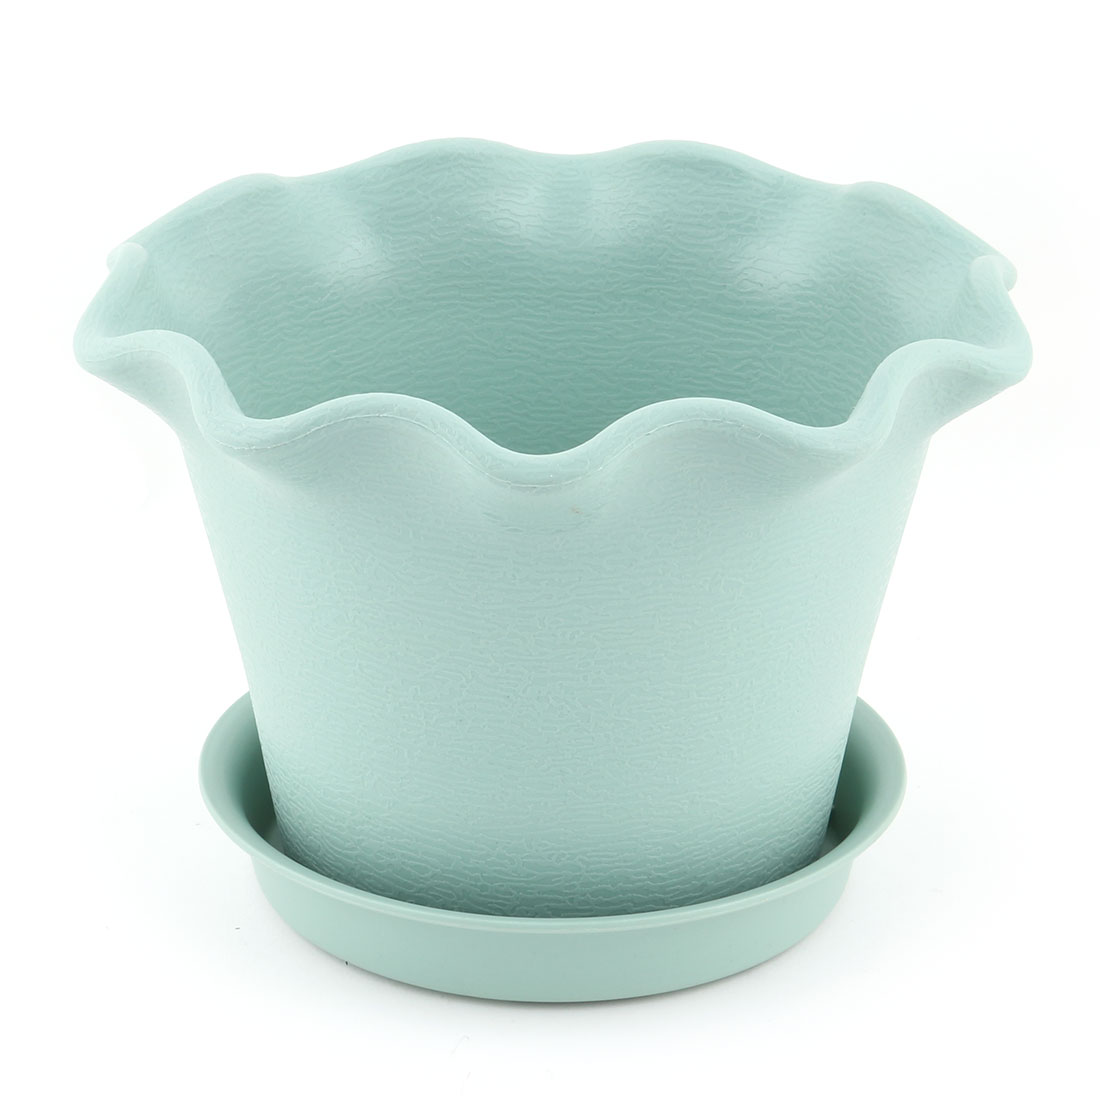 Office Table Plastic Petal Shaped Succulent Plant Flower Pot Holder Container Turquoise